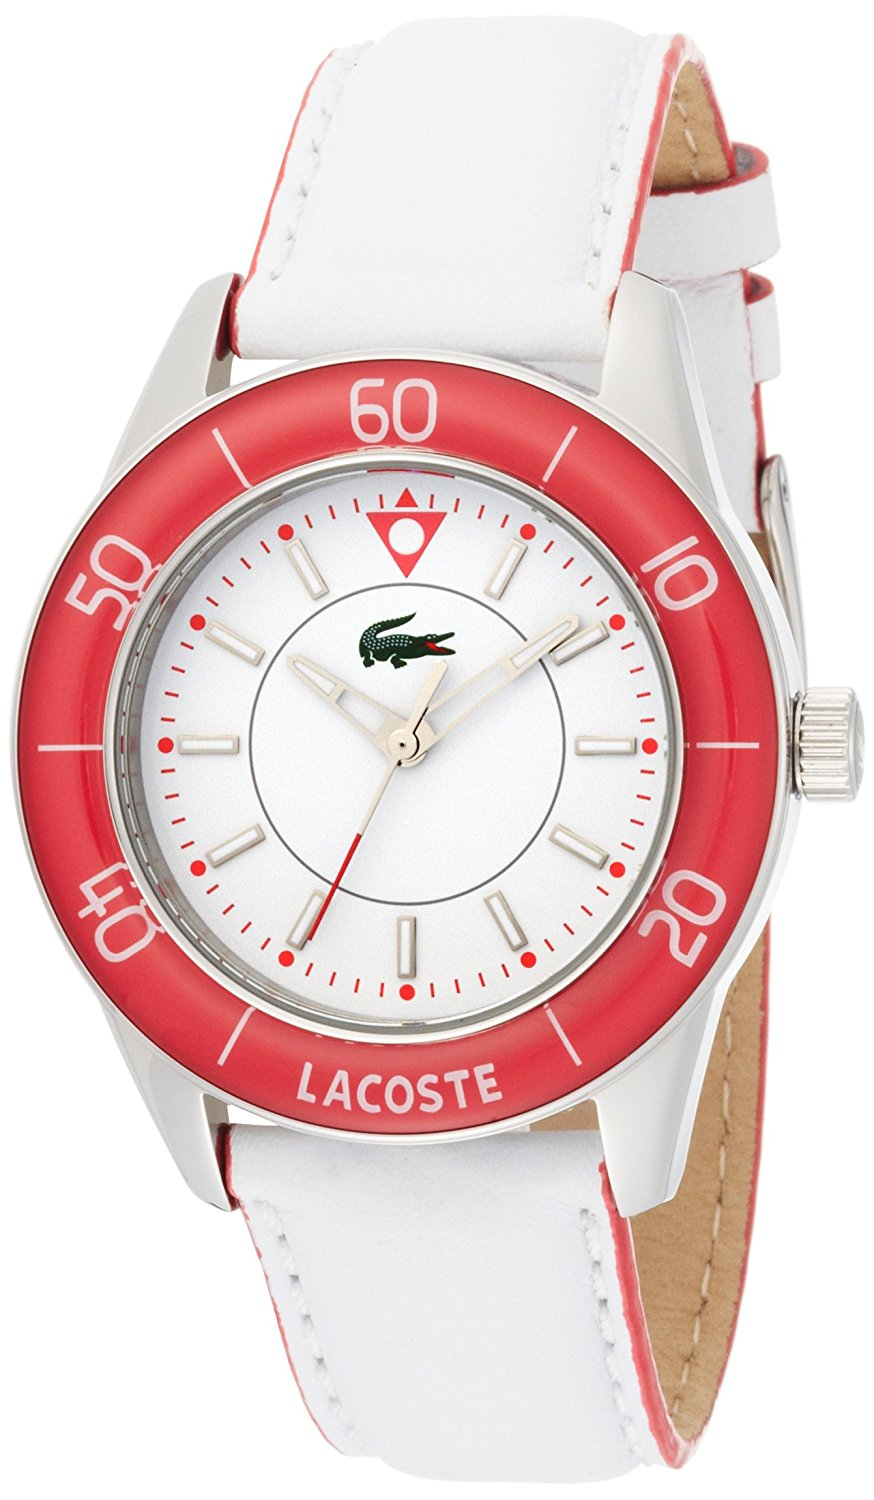 26571bb5ce5 Get Quotations · Lacoste Sportswear Collection Opio White Dial Women s watch   2000561